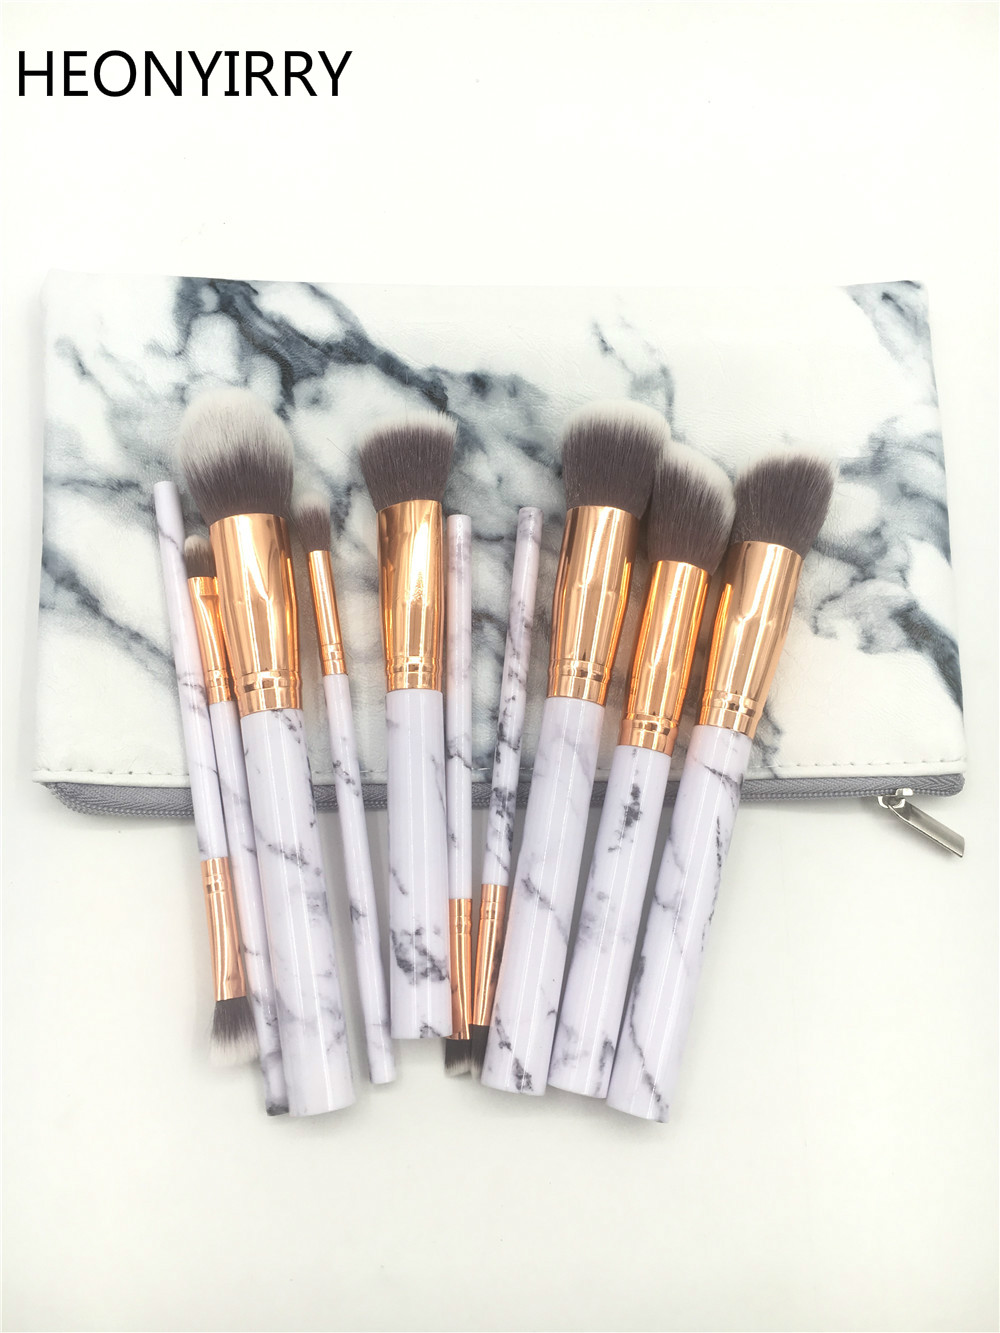 10pc Marble Makeup Brushes Soft Makeup Brush Set Foundation Powder Brush Beauty Cosmetic Marble Make Up Tools with Holder Bag